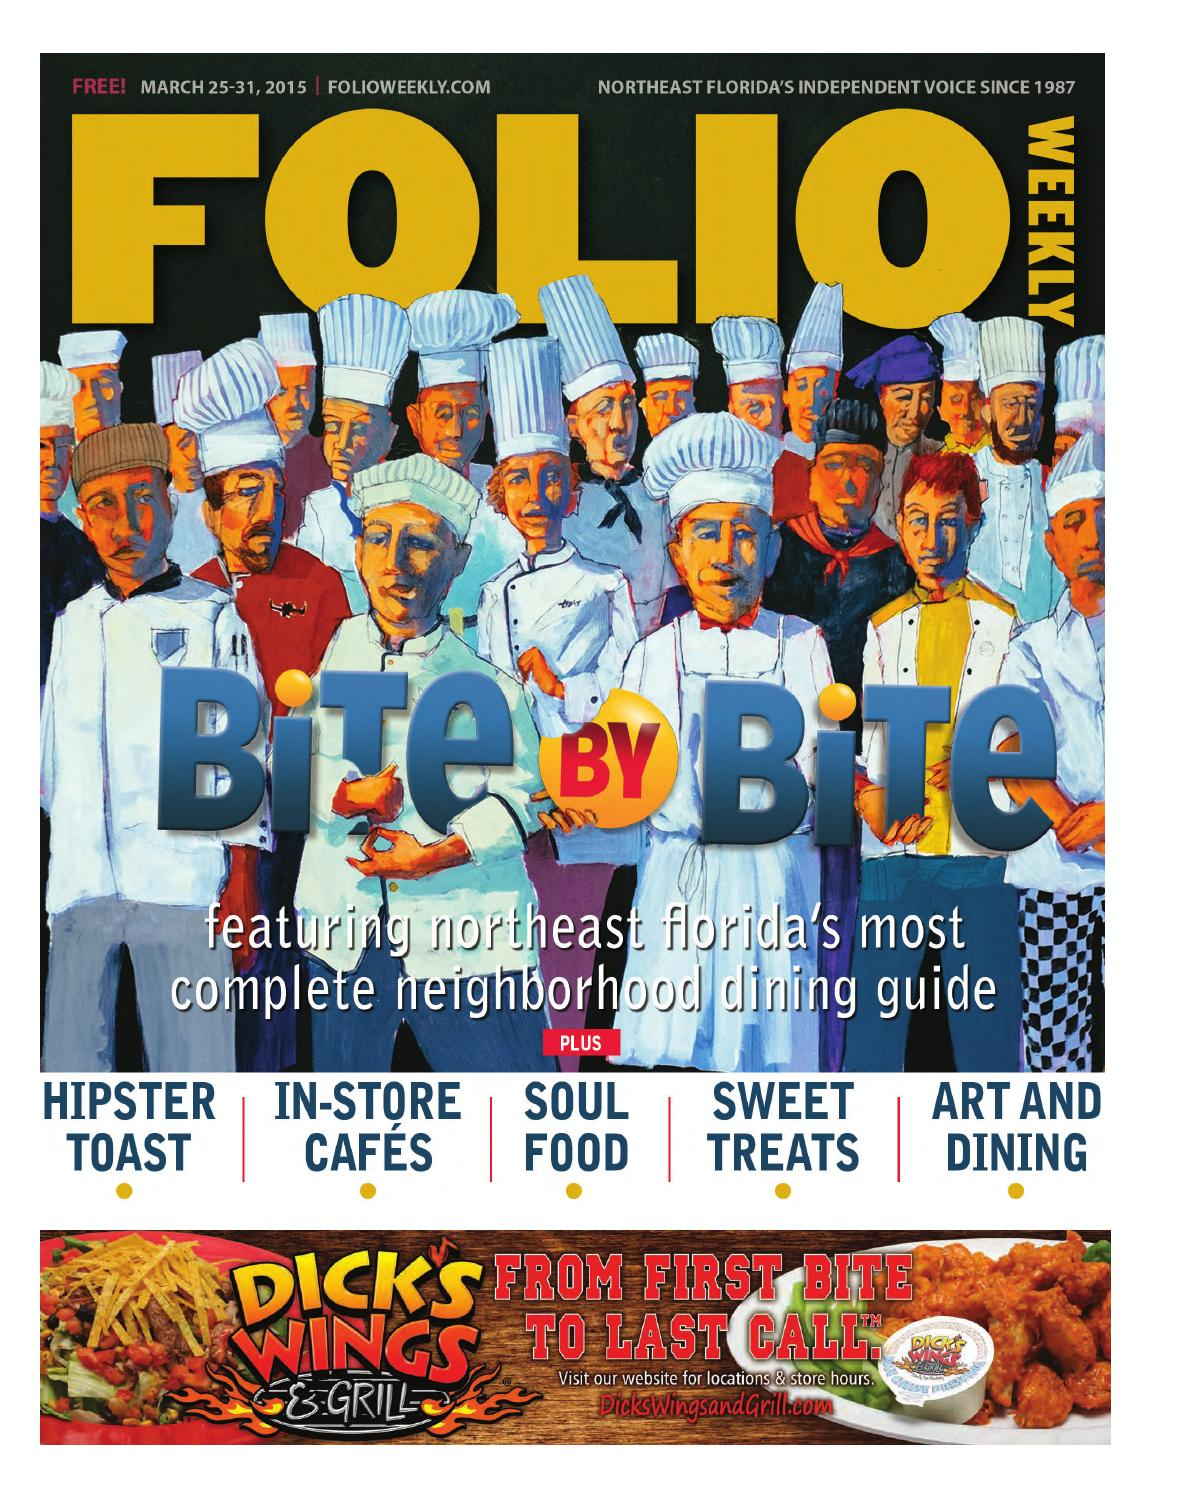 03 20 13 by folio weekly